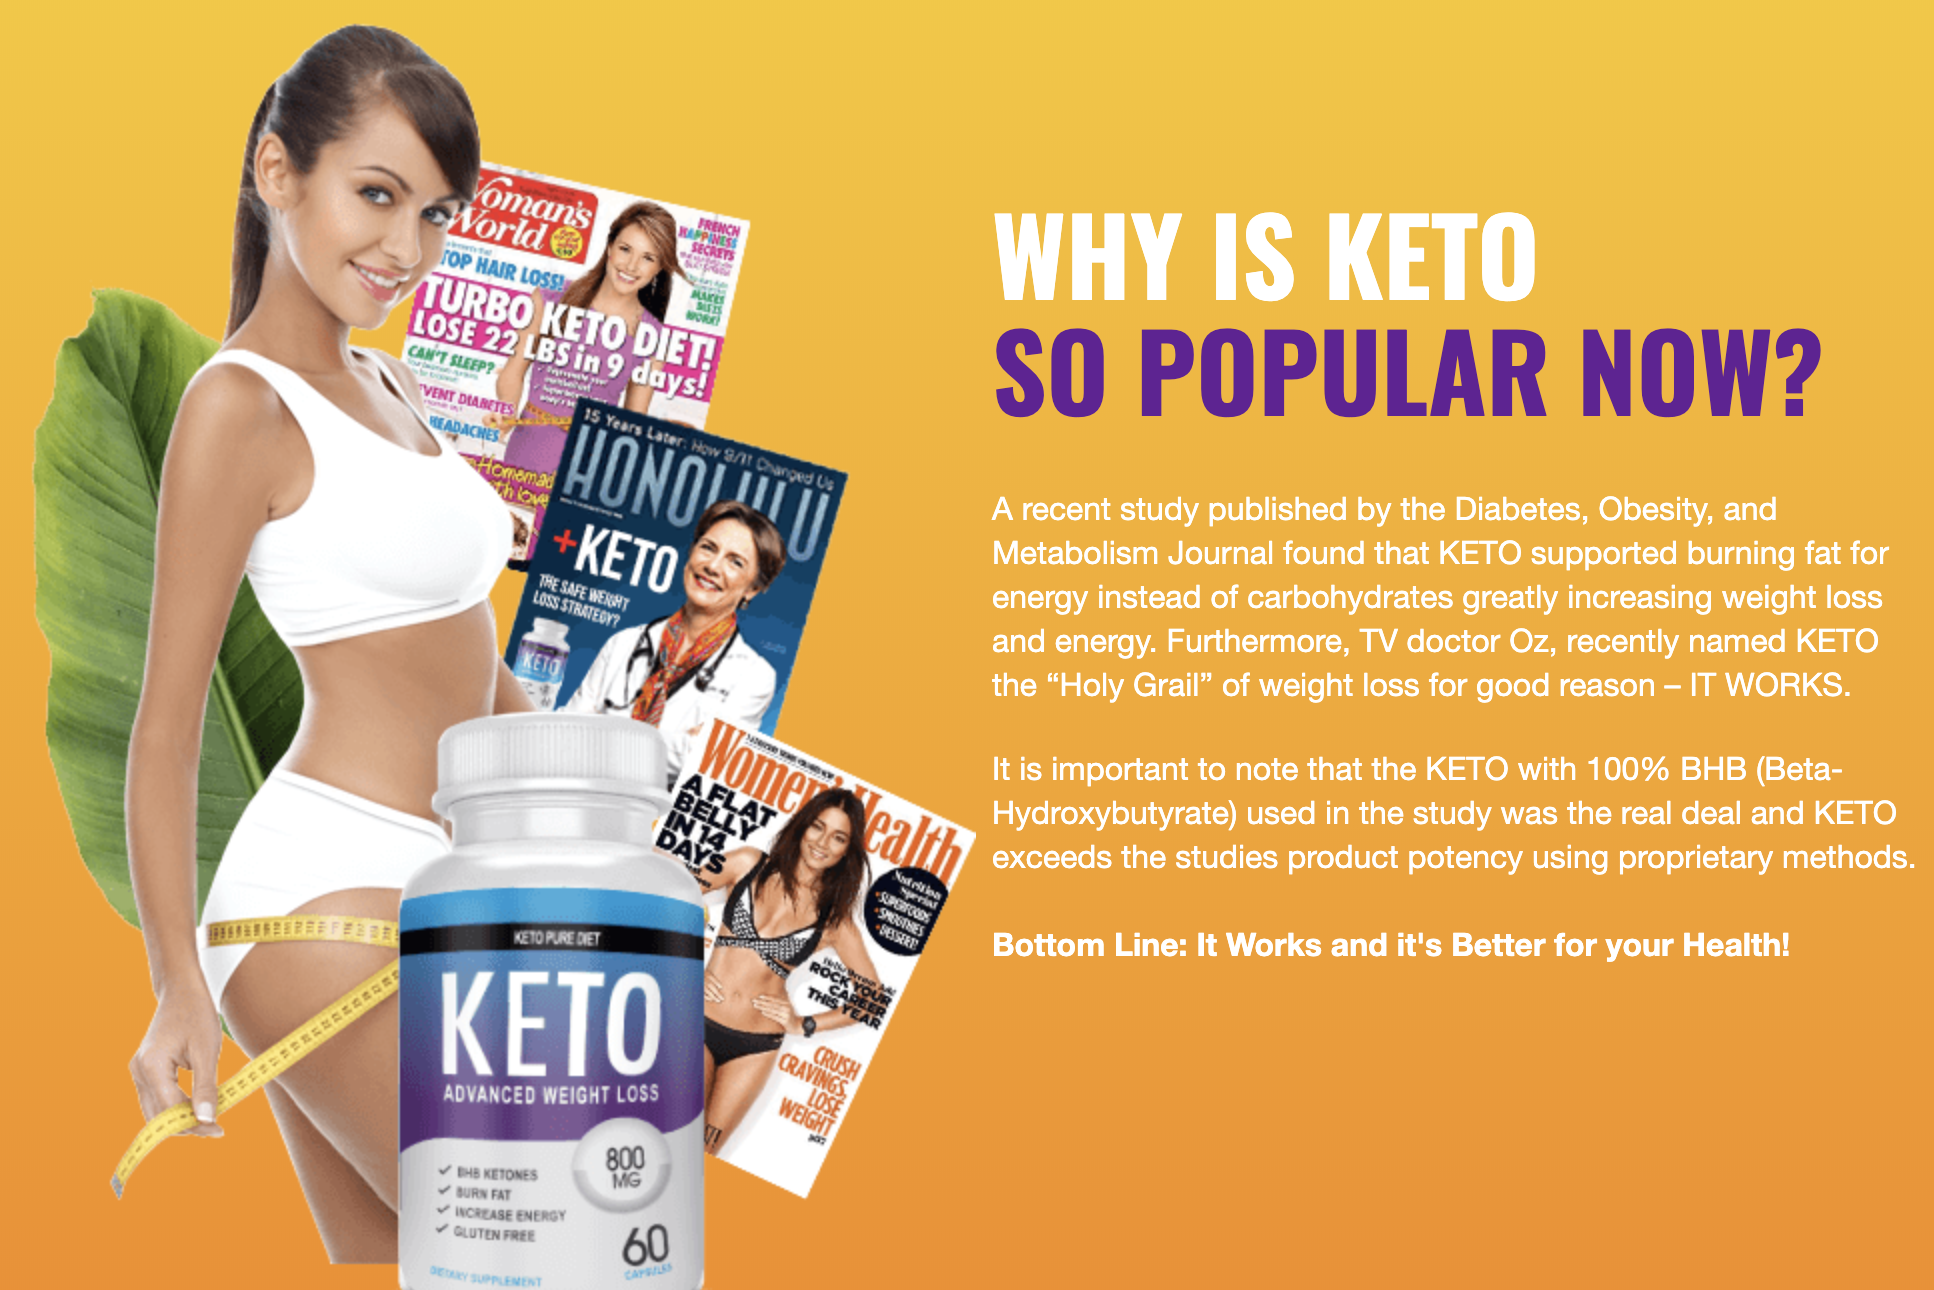 keto pure official diet